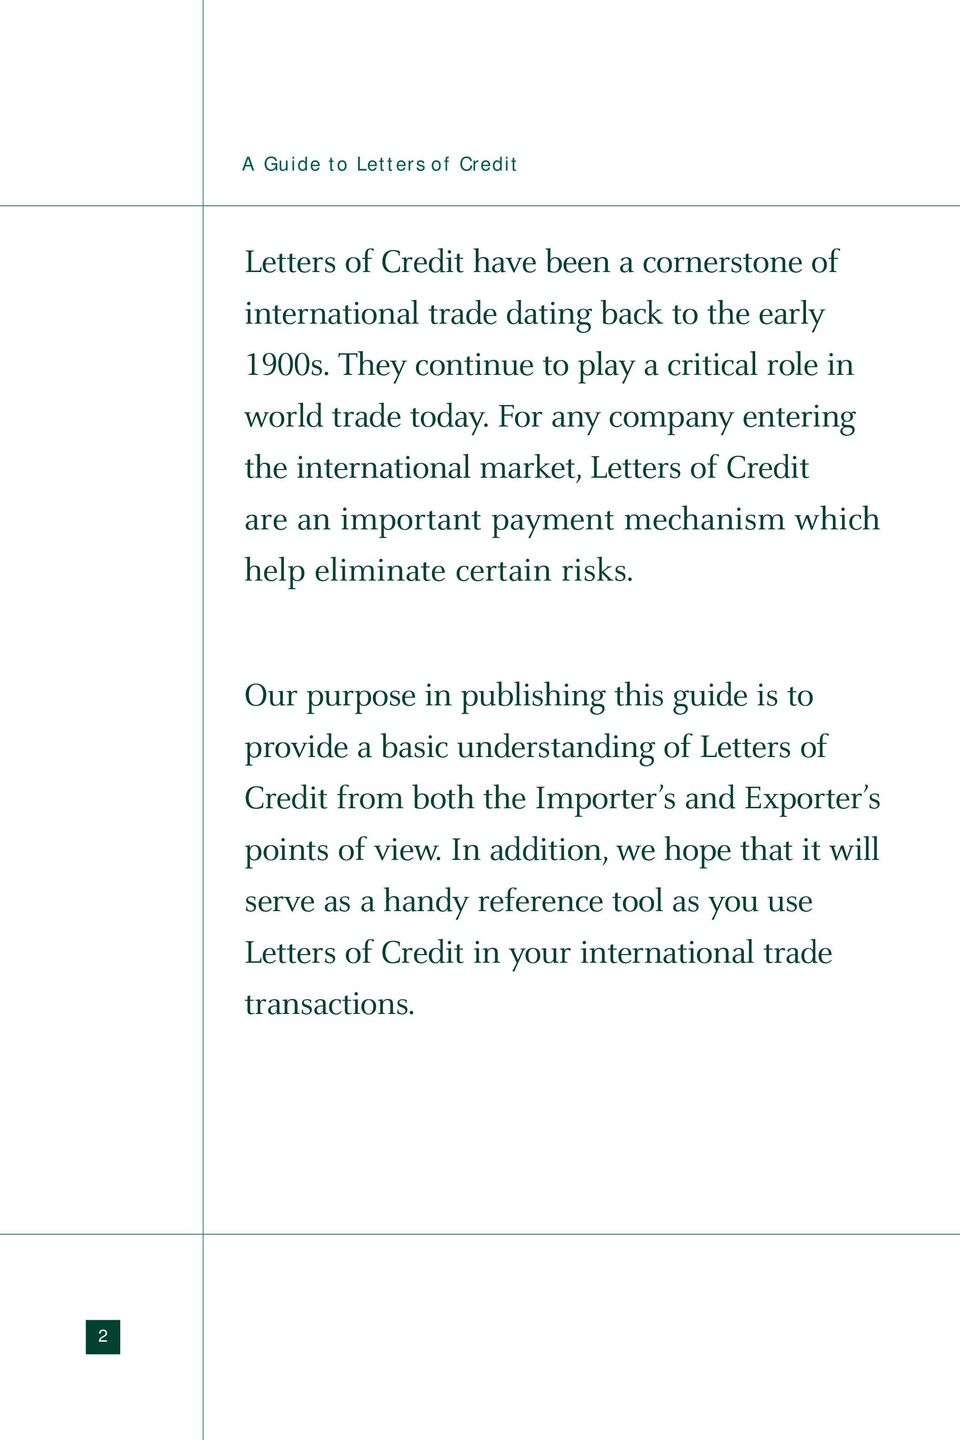 For any company entering the international market, Letters of Credit are an important payment mechanism which help eliminate certain risks.